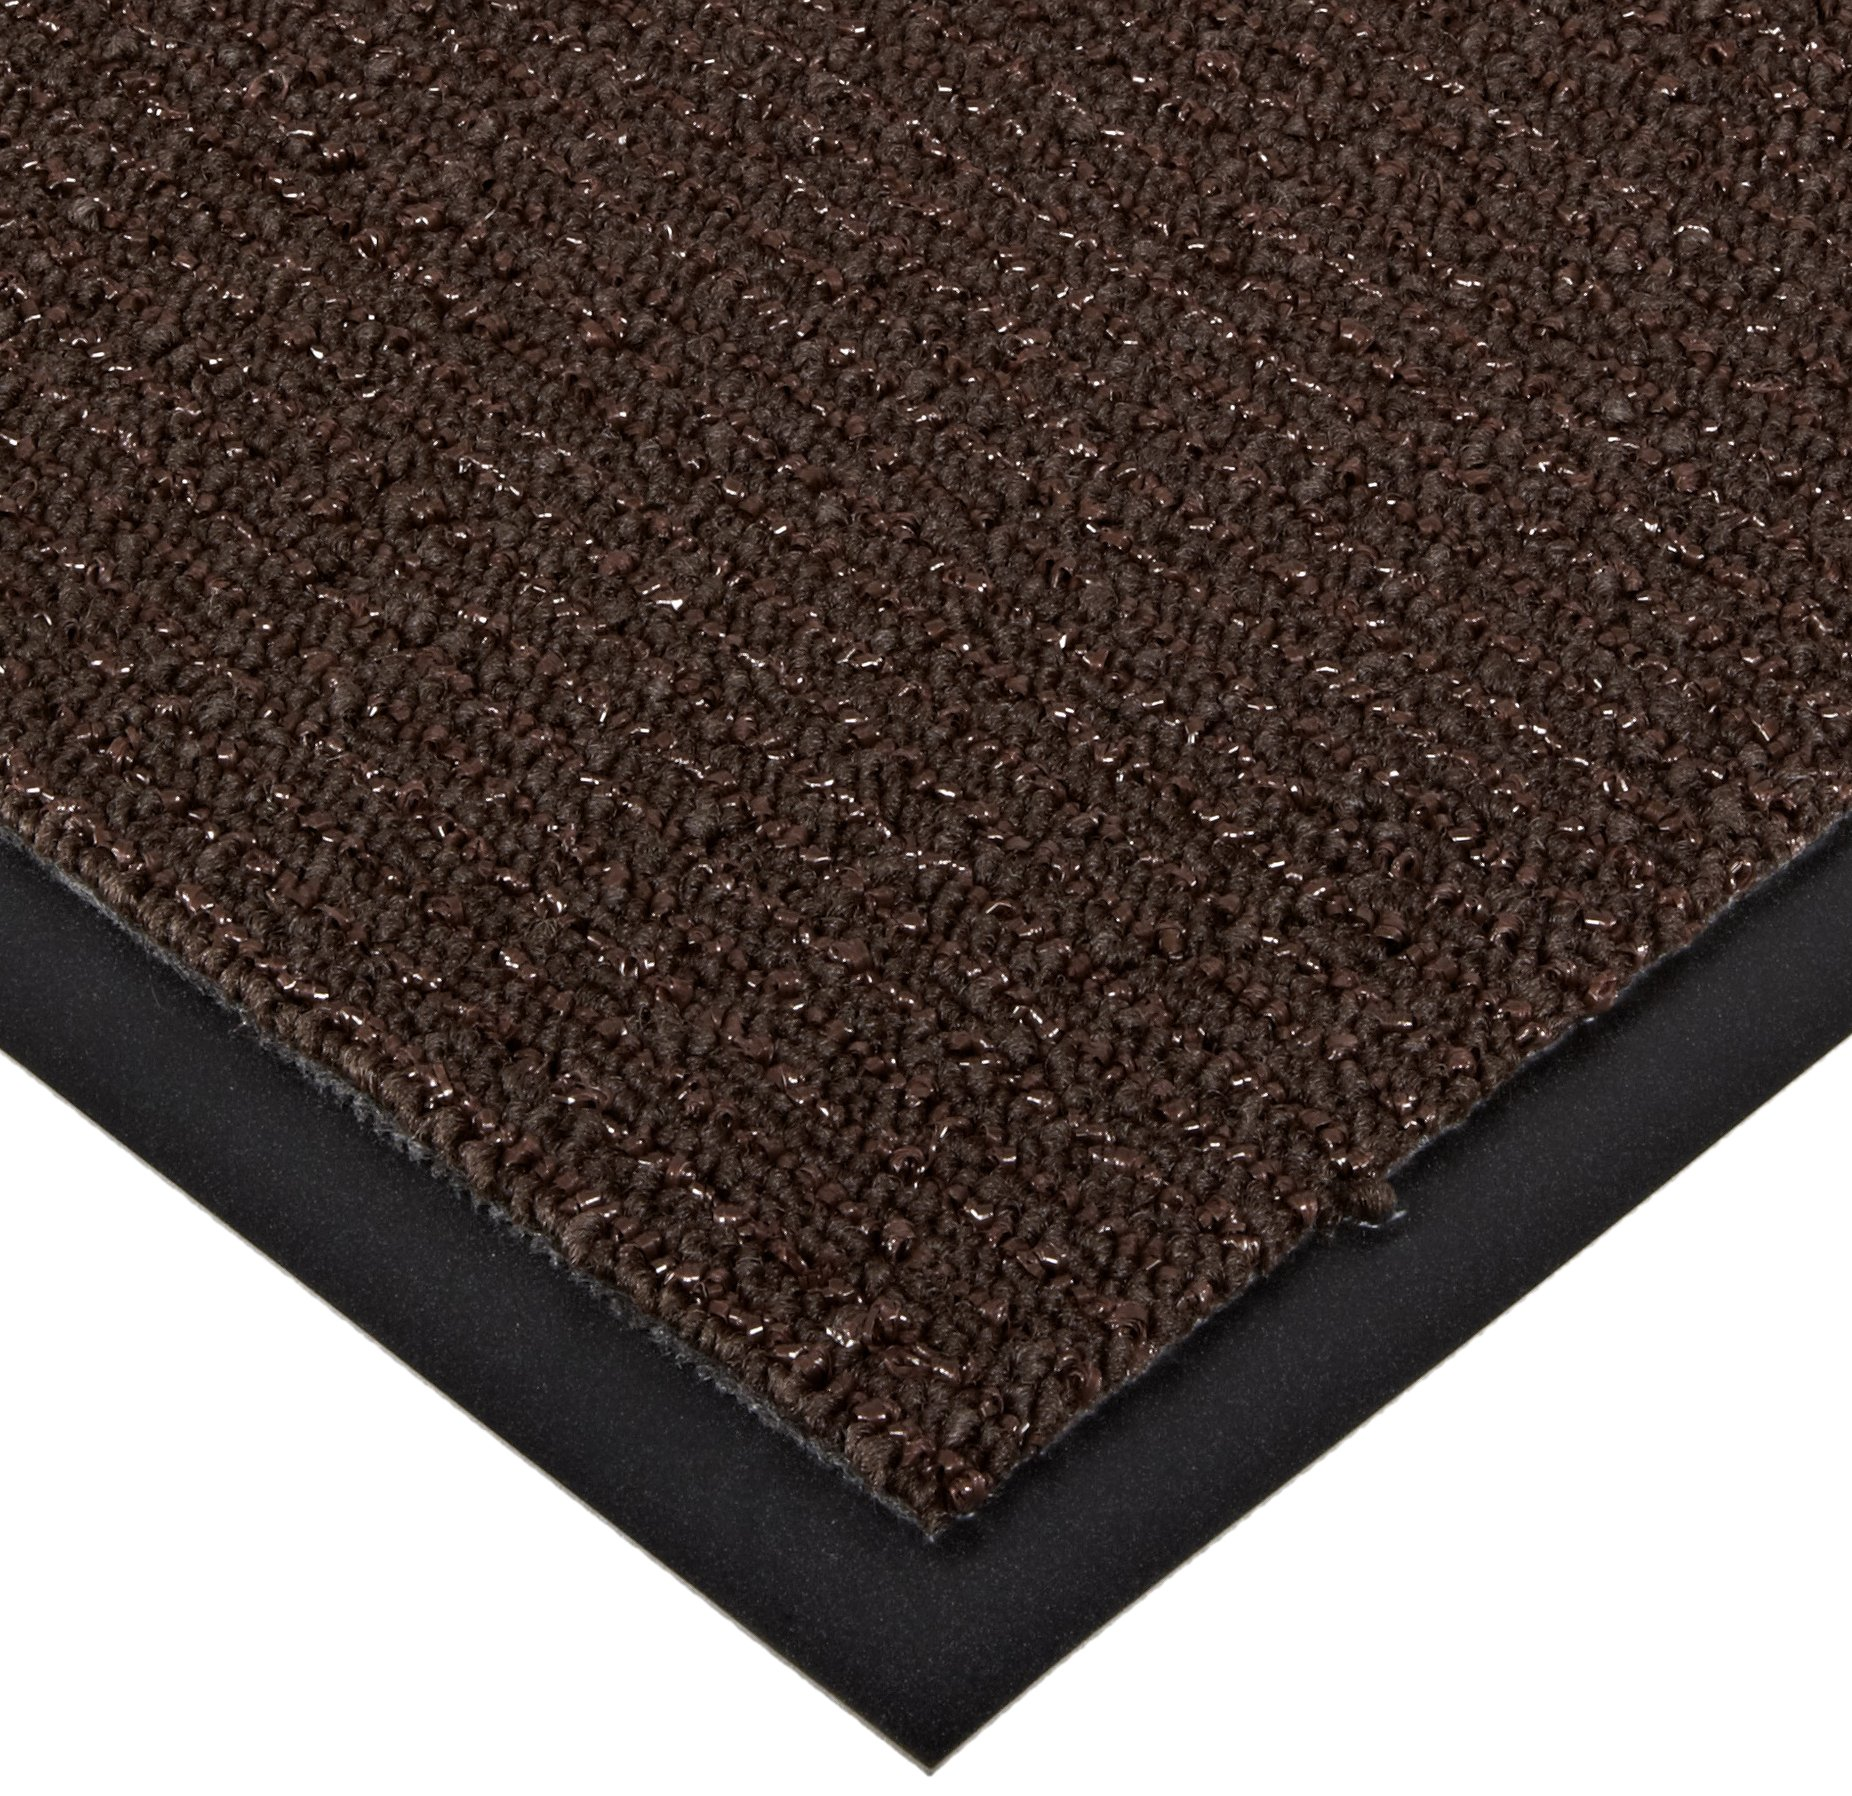 Notrax 146 Encore Entrance Mat, for Inside Foyer Area, 3' Width x 10' Length x 5/16'' Thickness, Brown